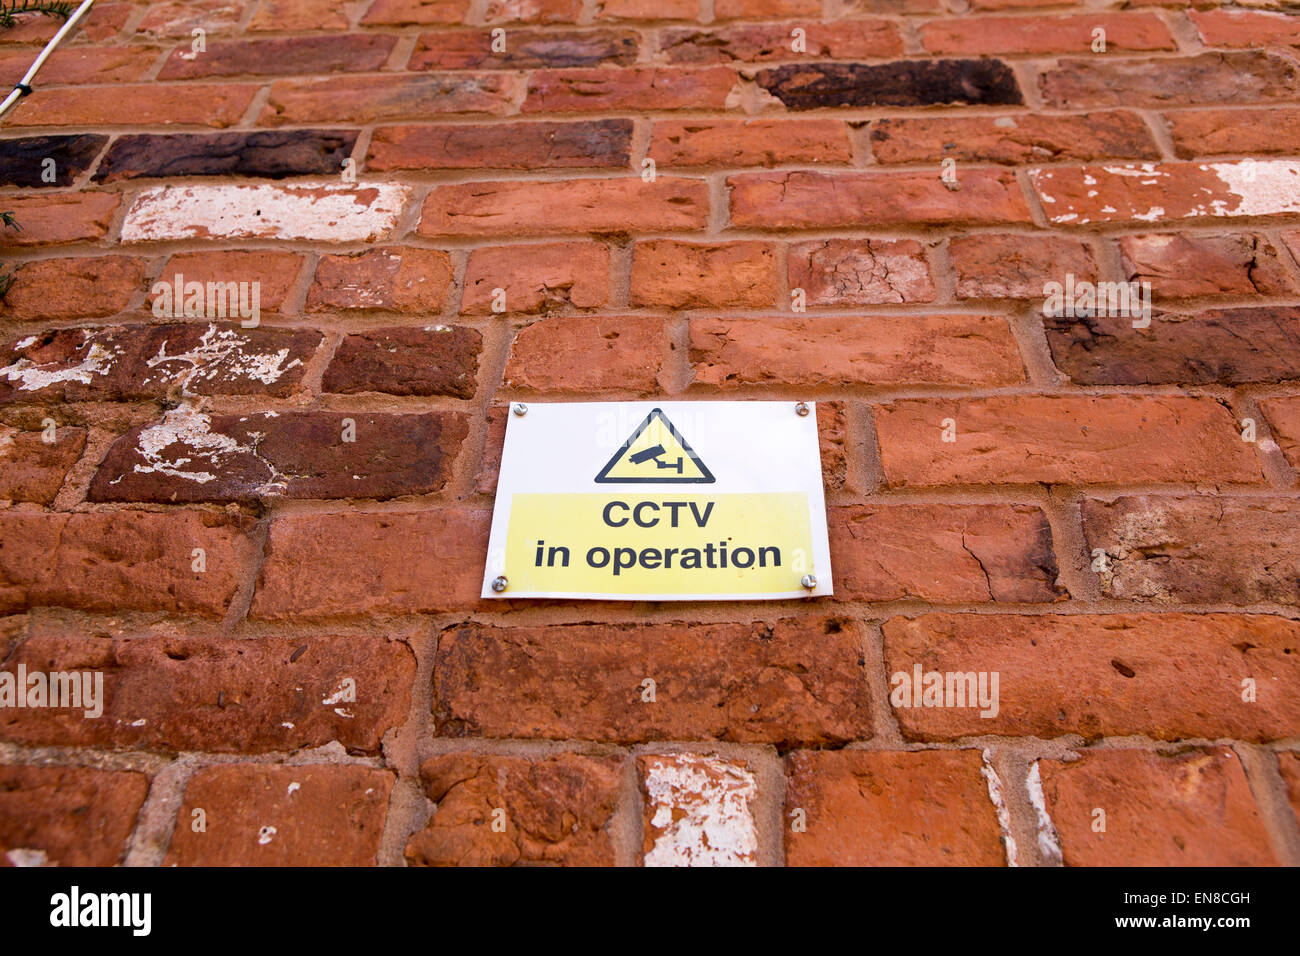 CCTV in operation sign on a red brick wall - Stock Image